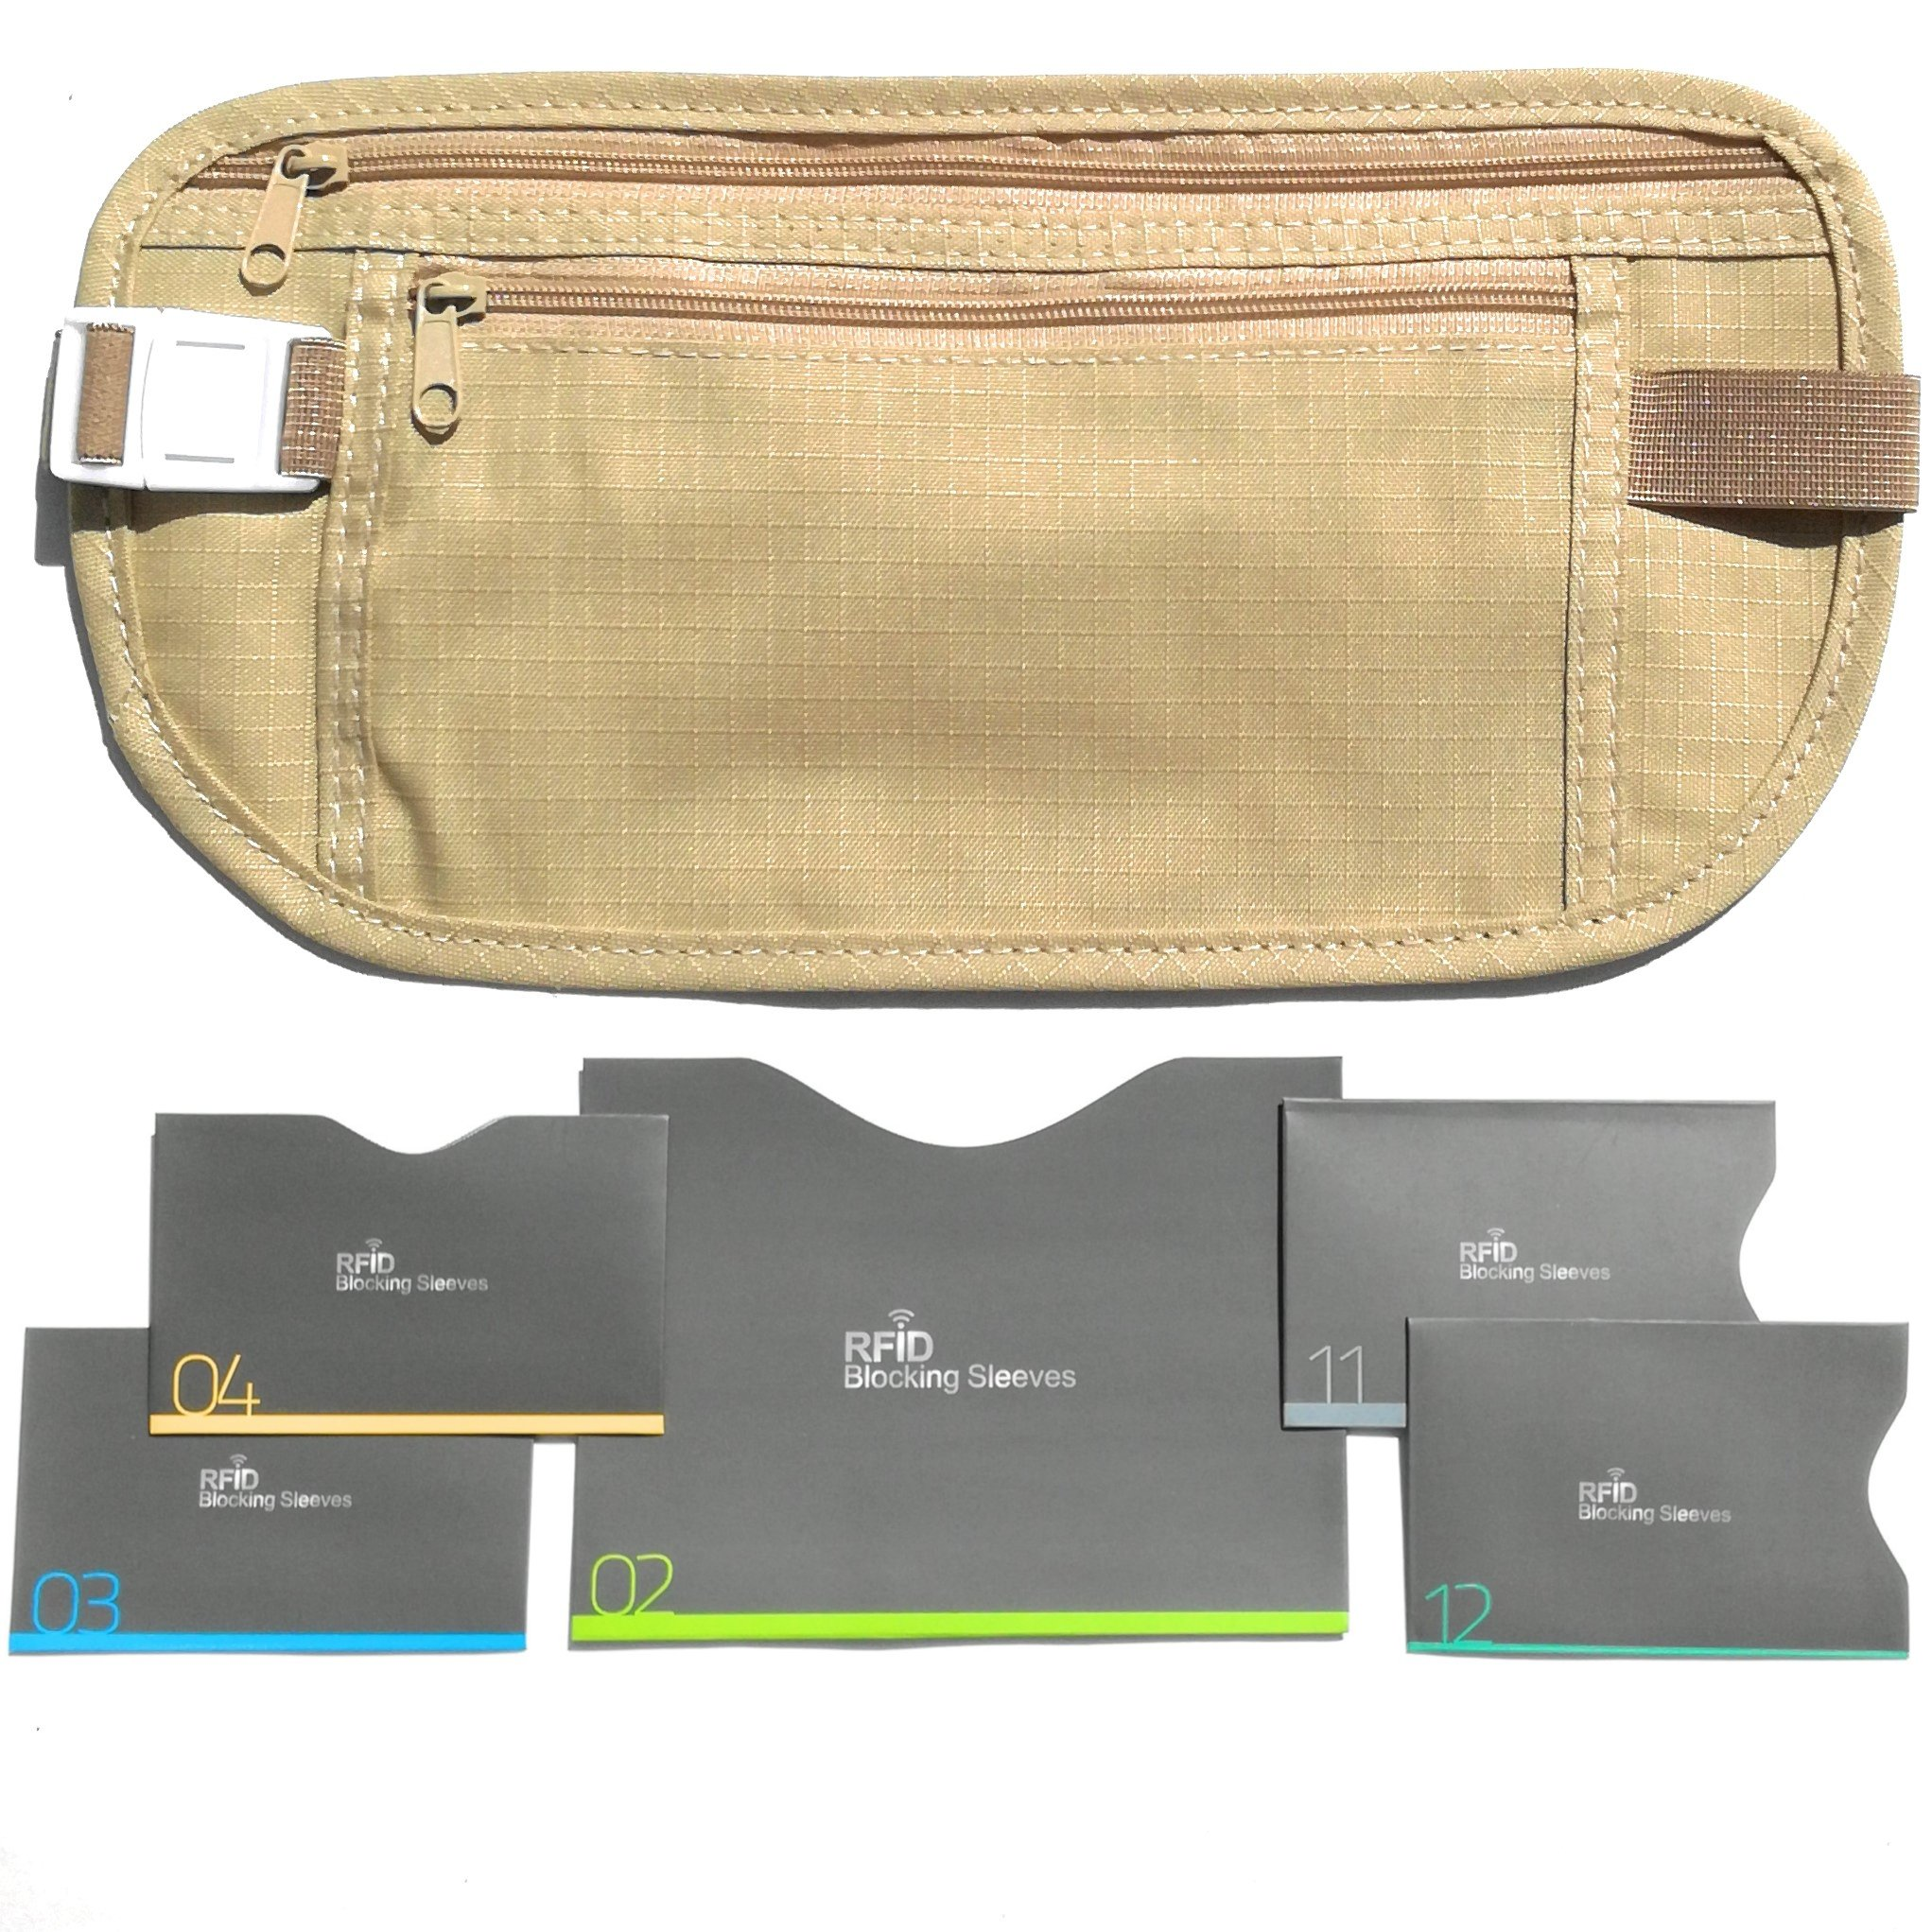 Travel Goodies Money Belt For Travel with RFID Blocking Sleeves For Daily Use (Beige)